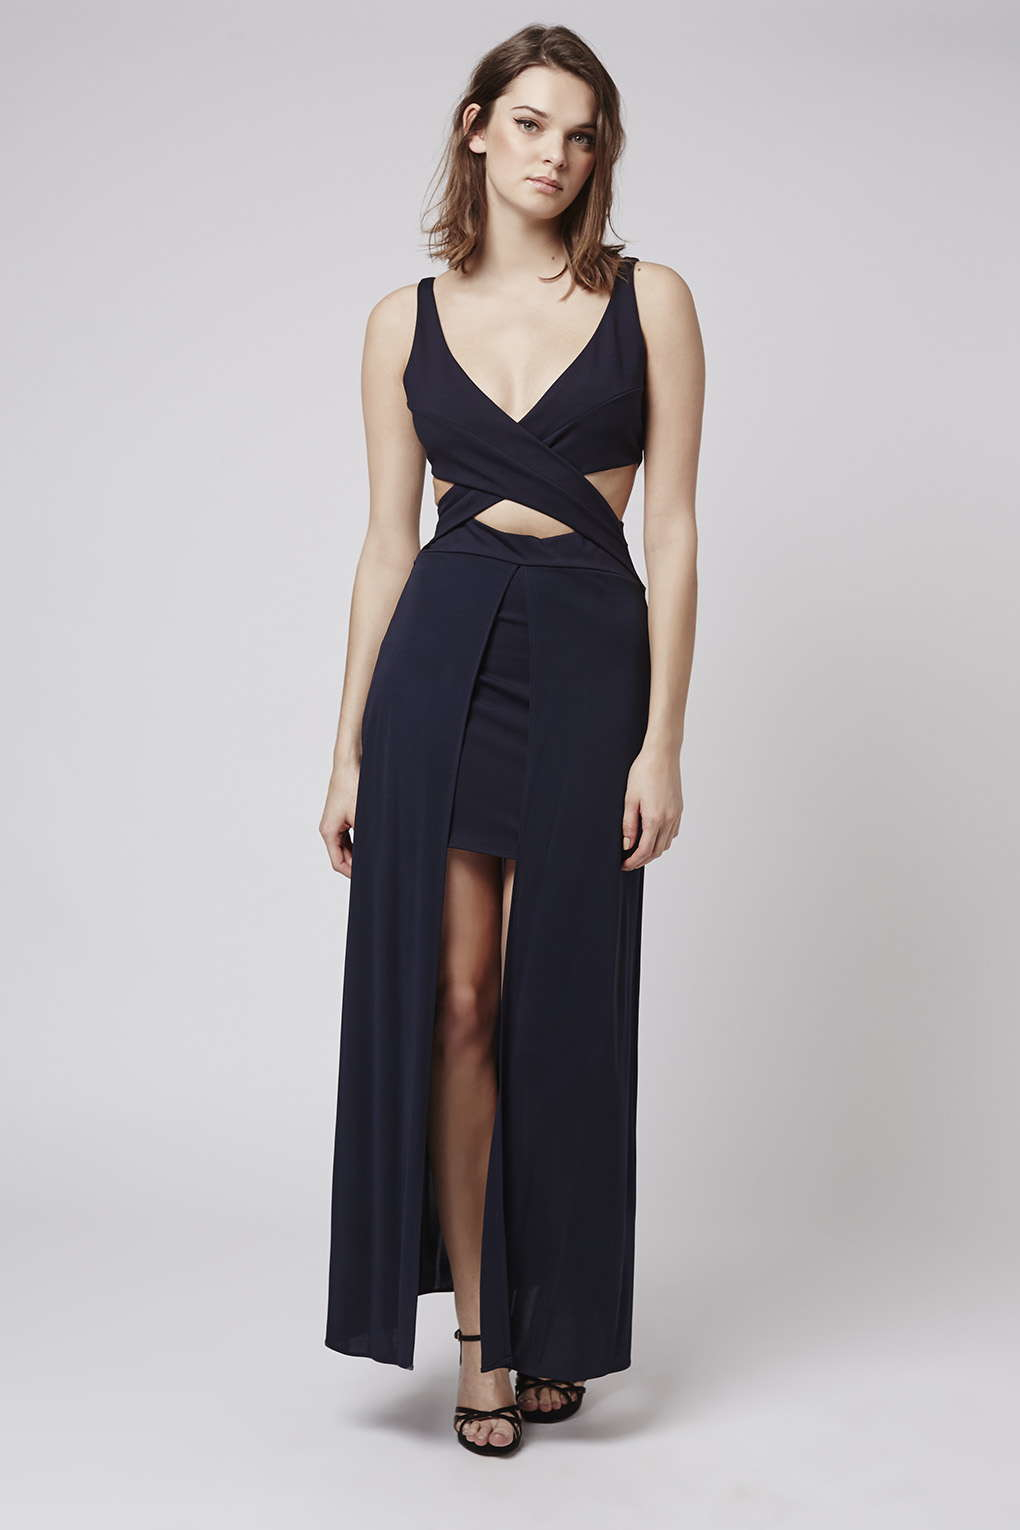 Topshop Cross Over Cut Out Maxi Dress in Blue - Lyst